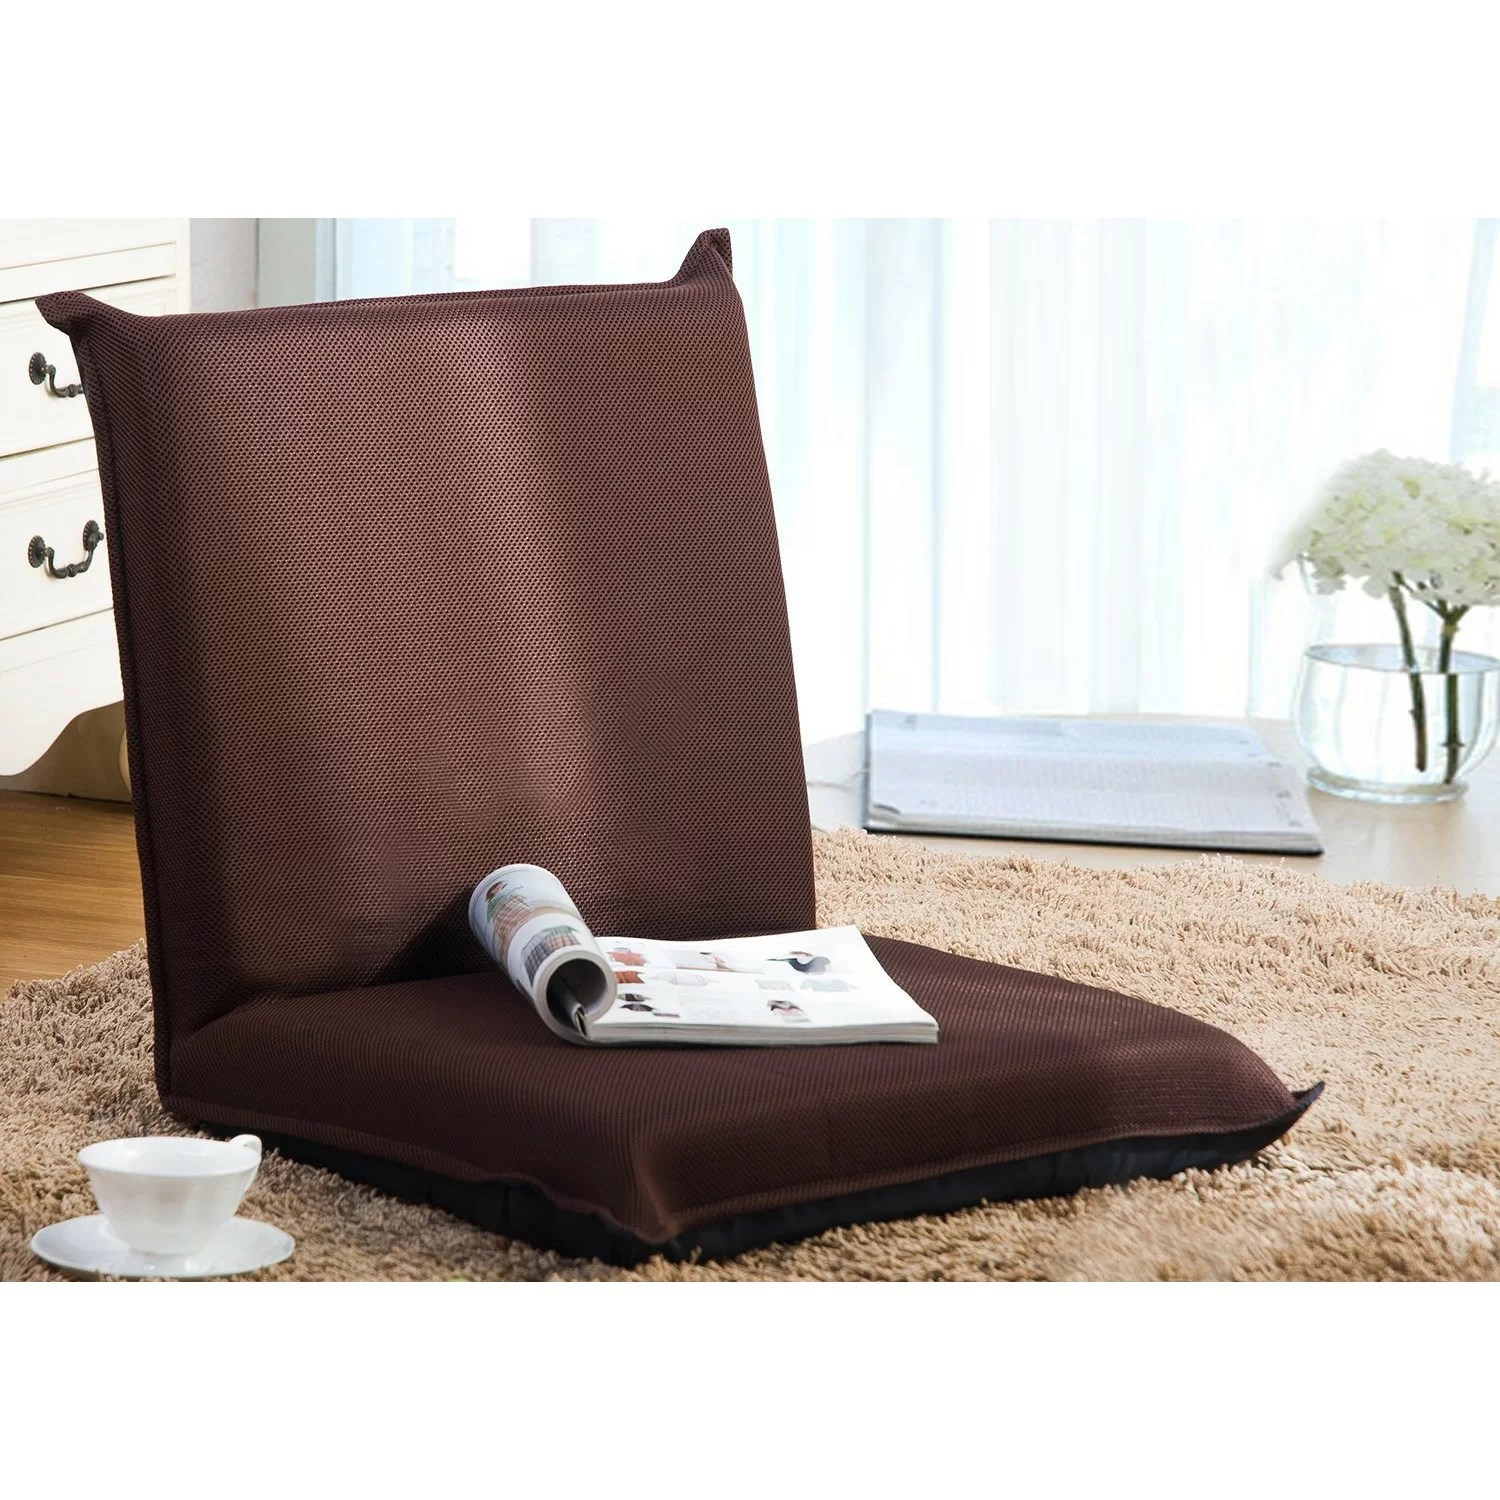 Merax MultiFunction Folding Cushion Floor Chair  Reviews  Wayfair